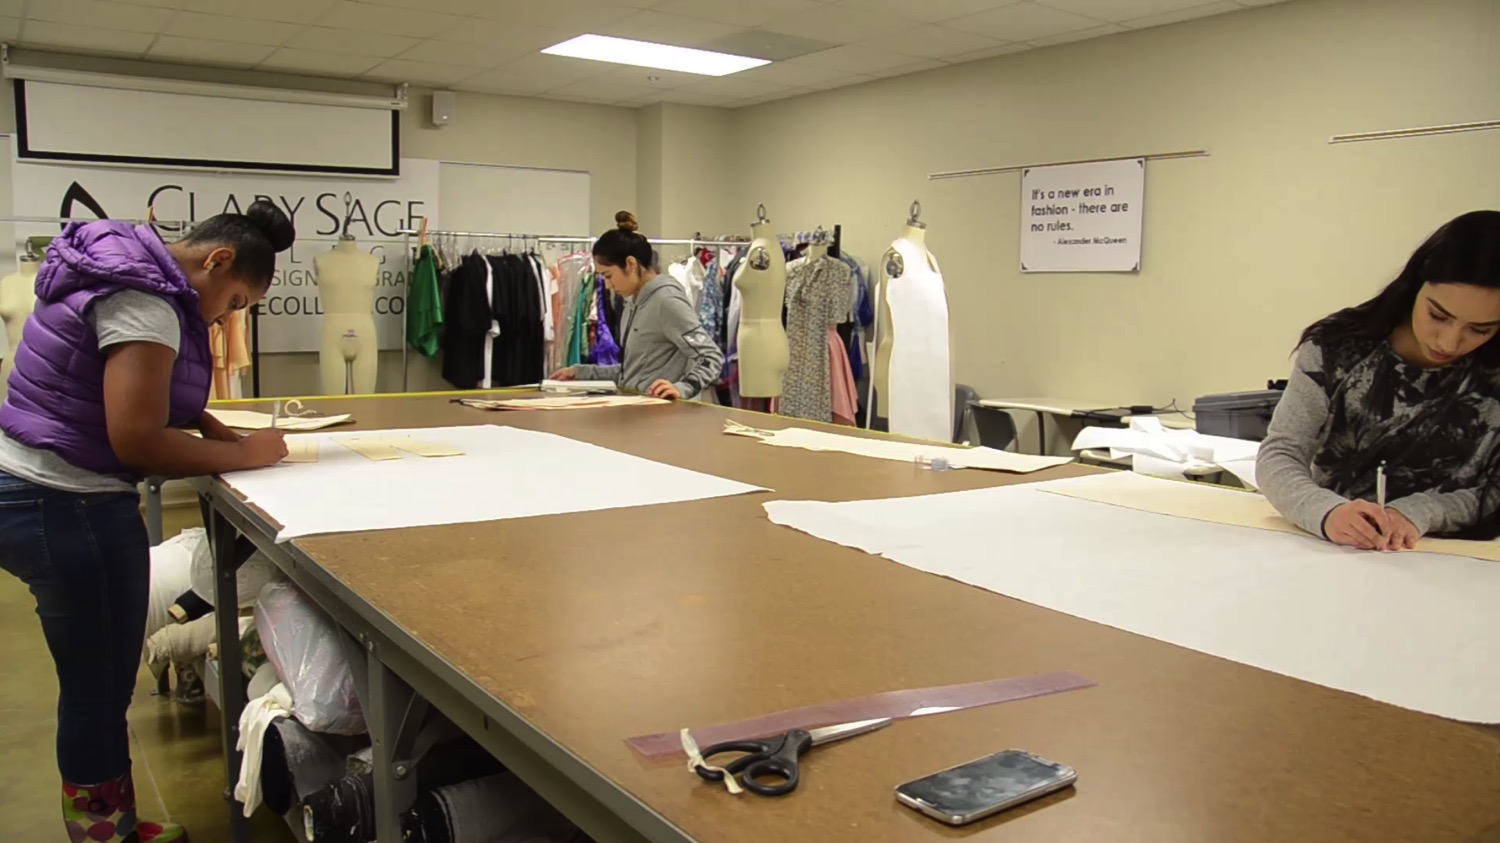 Fashion Design School Clary Sage College Tulsa OK Enroll Today